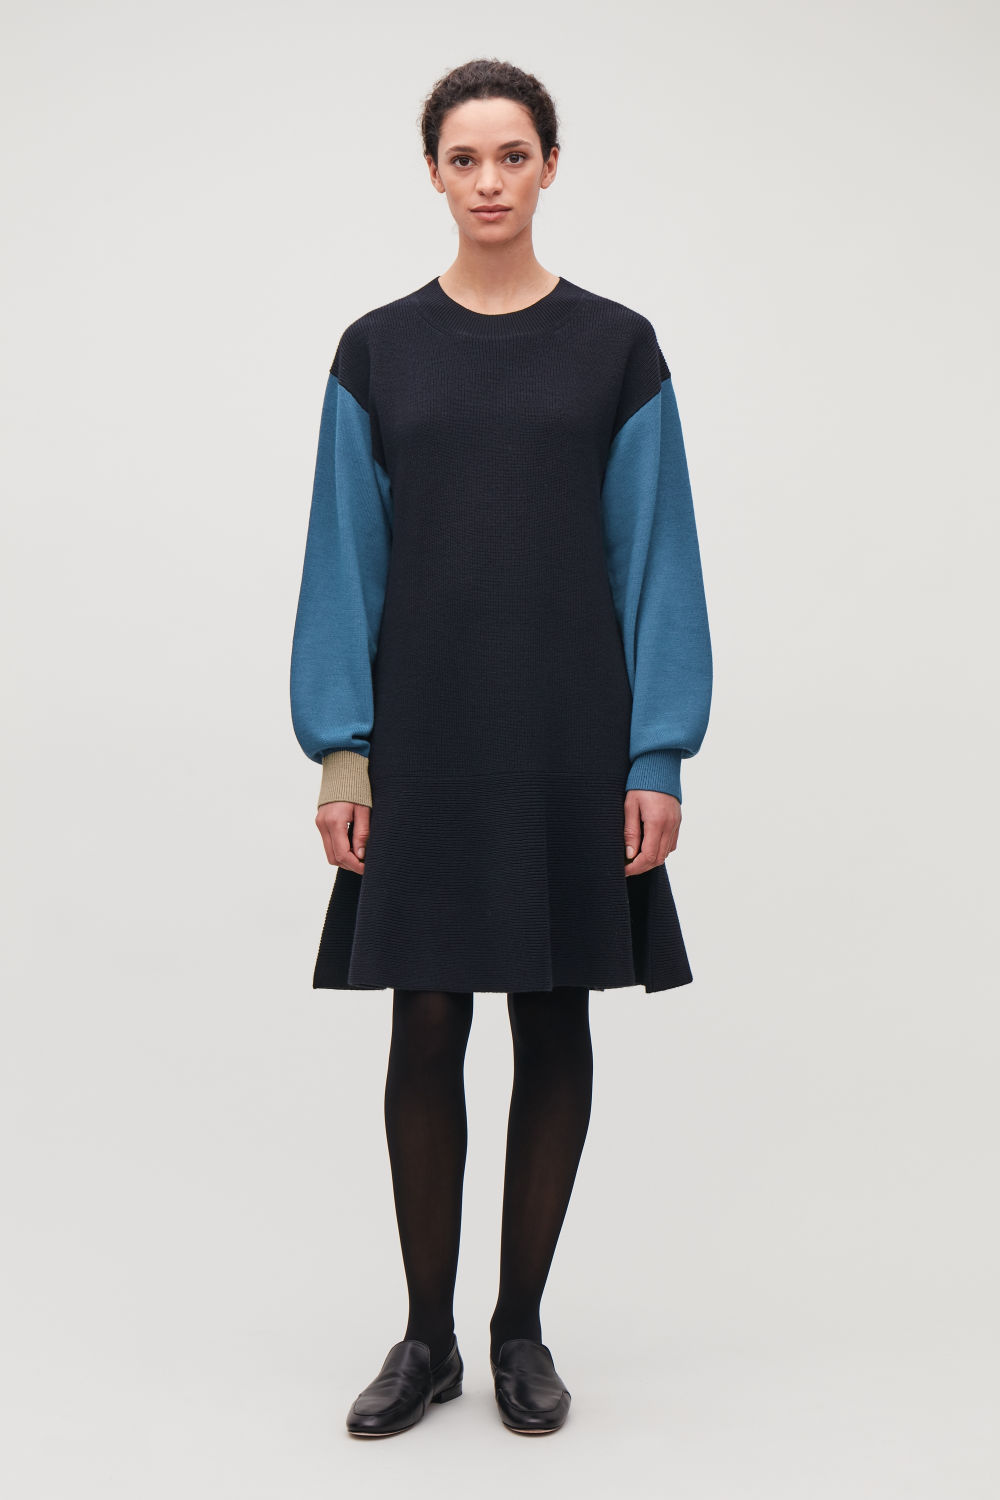 COLOUR-BLOCK WOOL-KNIT DRESS